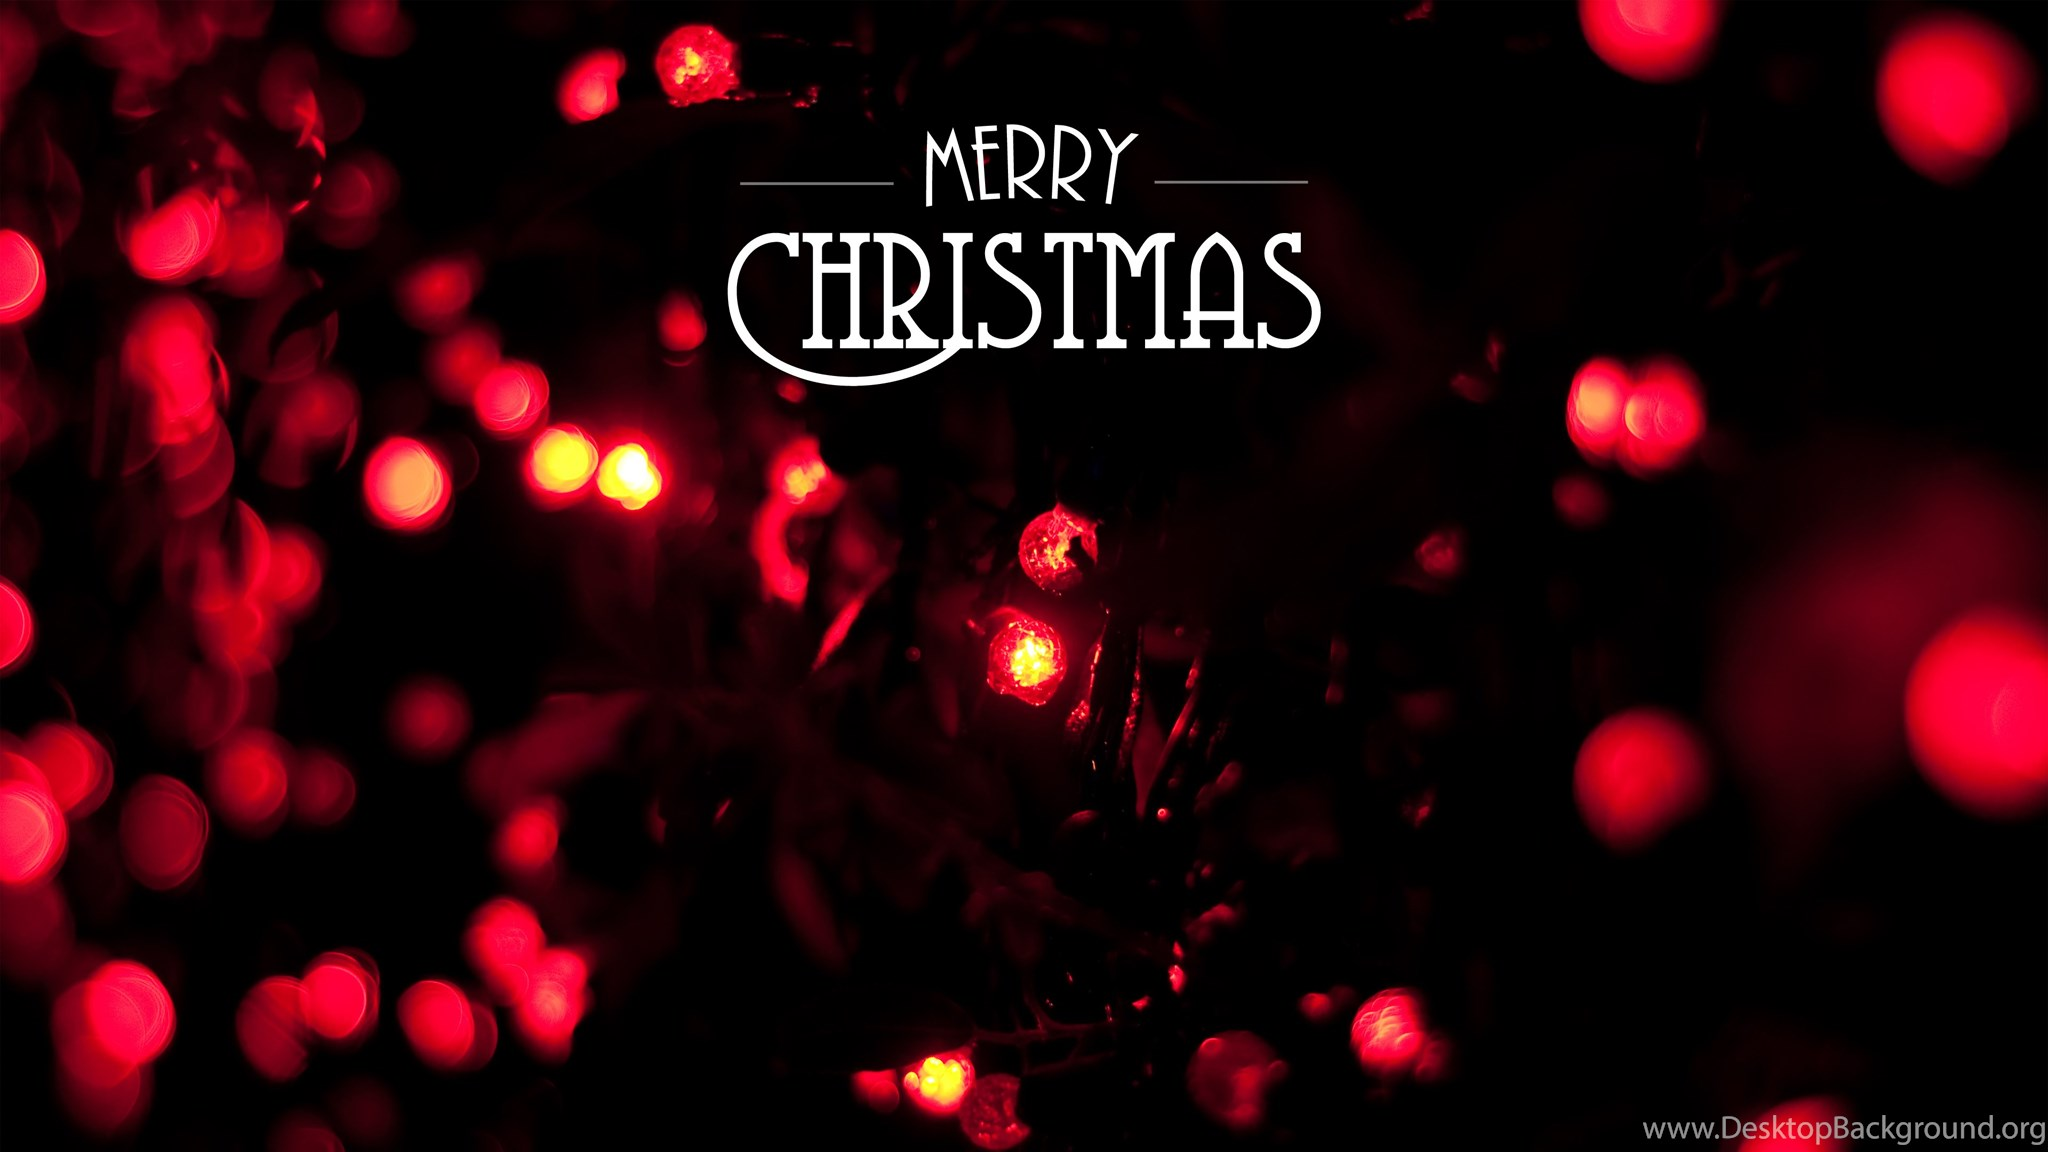 Merry Christmas Wallpapers For Computer Smartphone Iphone